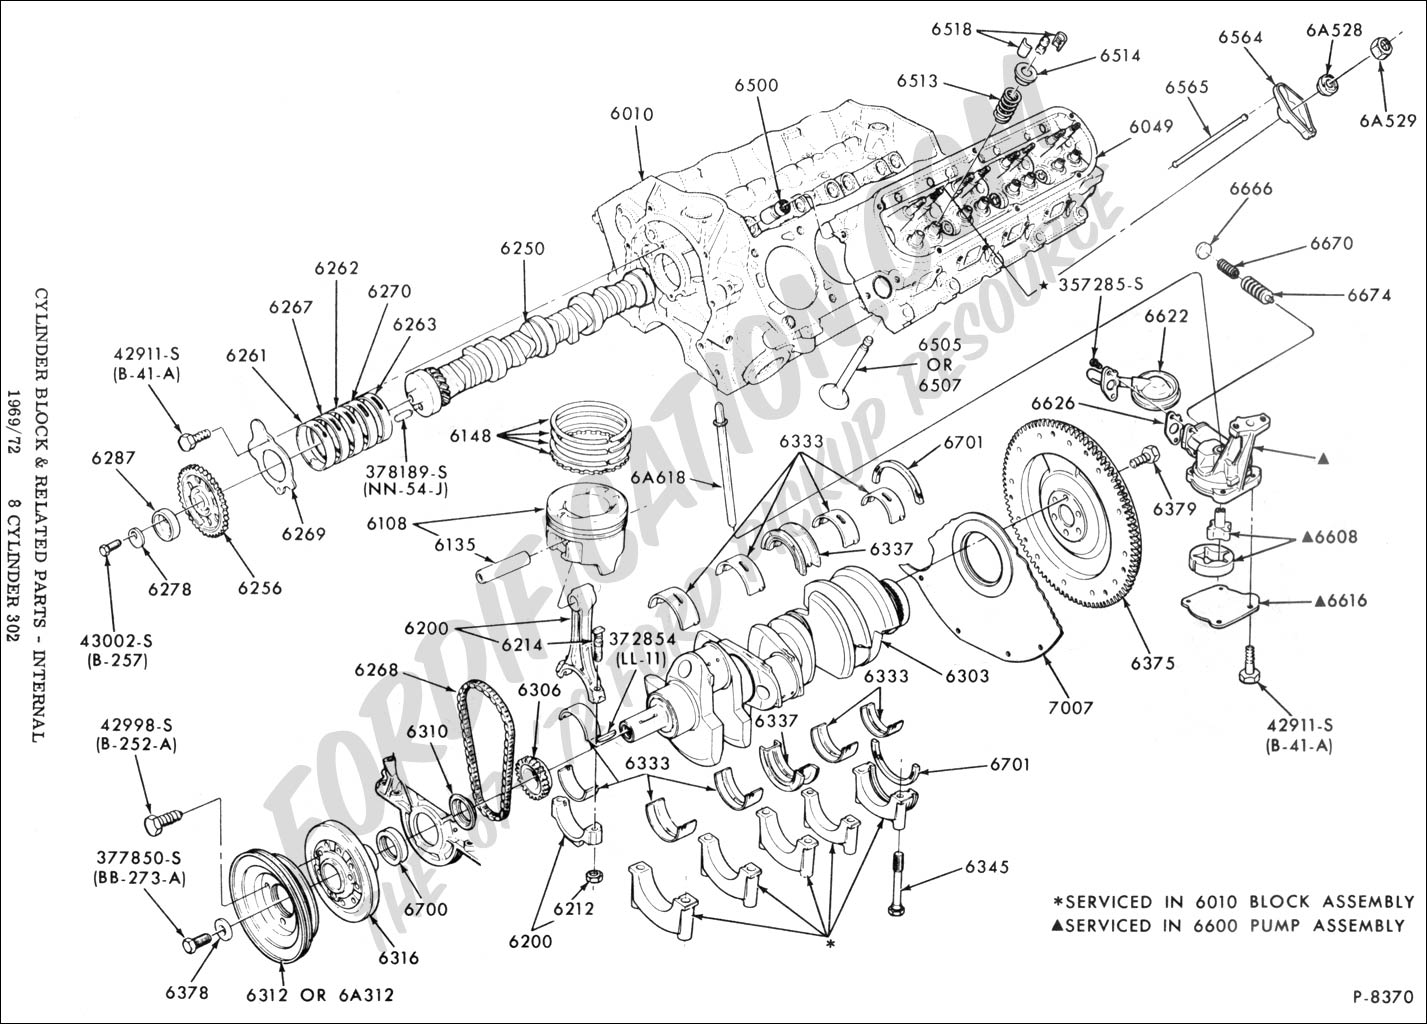 2003 ford mustang engine diagram ford truck technical drawings and schematics - section e ...